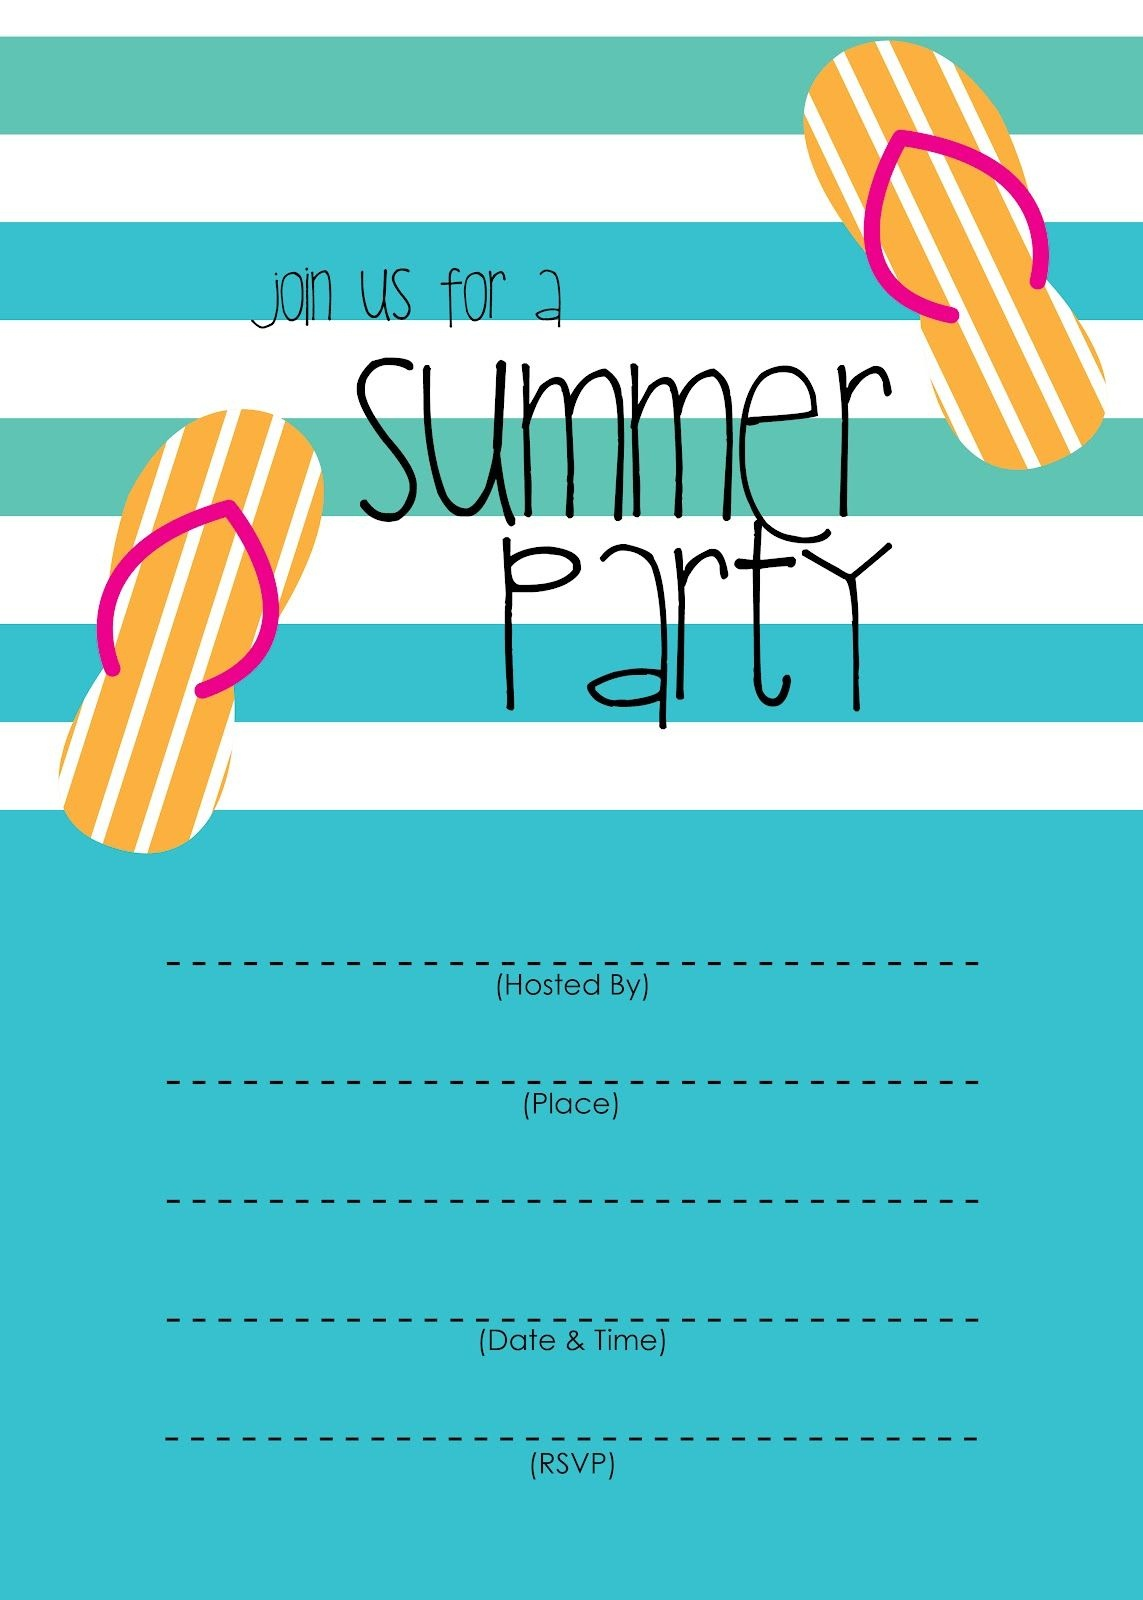 Summer Party Invitation – Free Printable | End Of Year Party Ideas - Free Printable Event Invitations